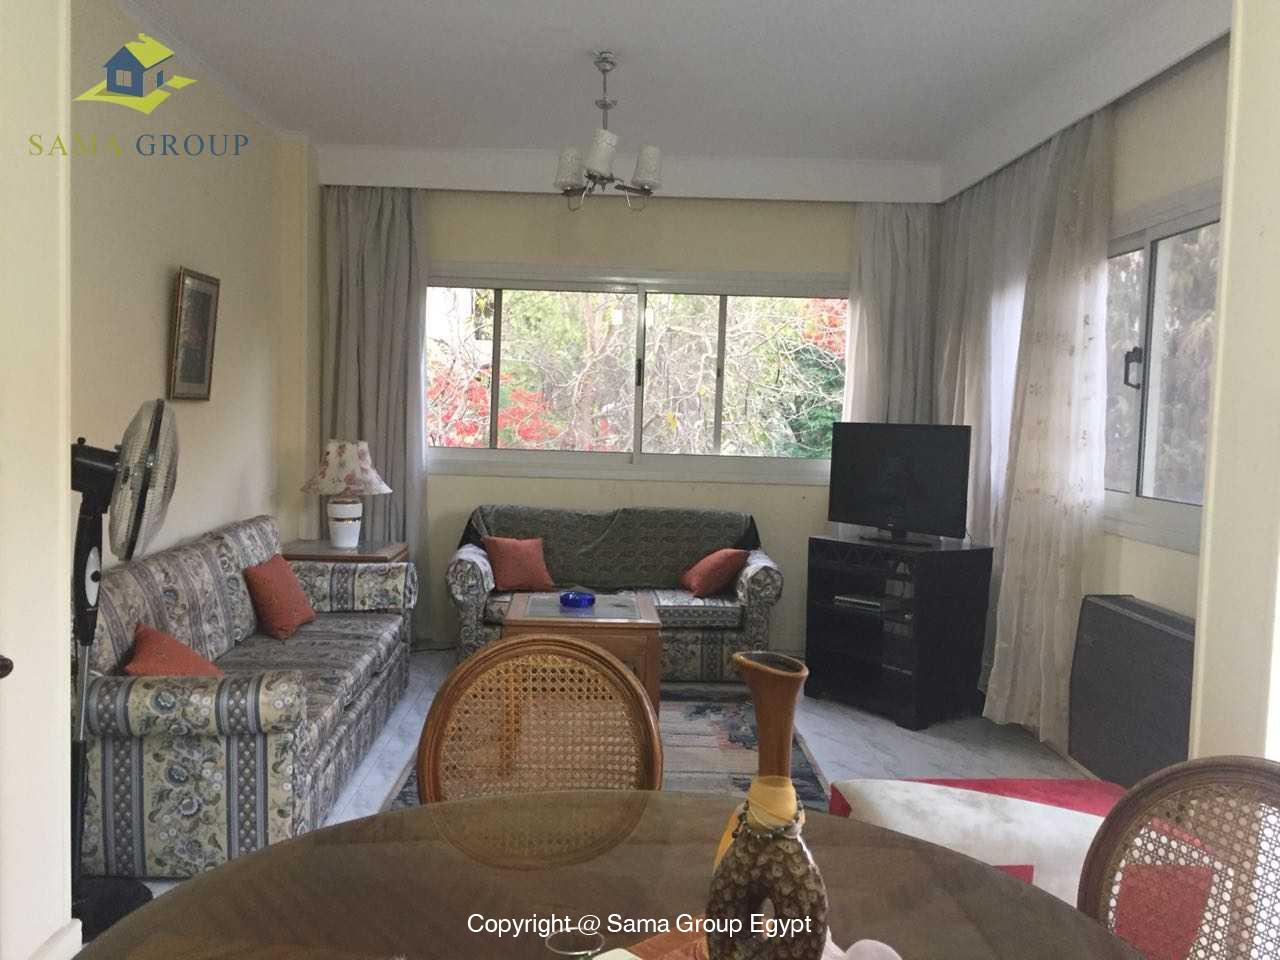 Furnished Apartment For Rent In Maadi,Furnished,Apartment NO #14